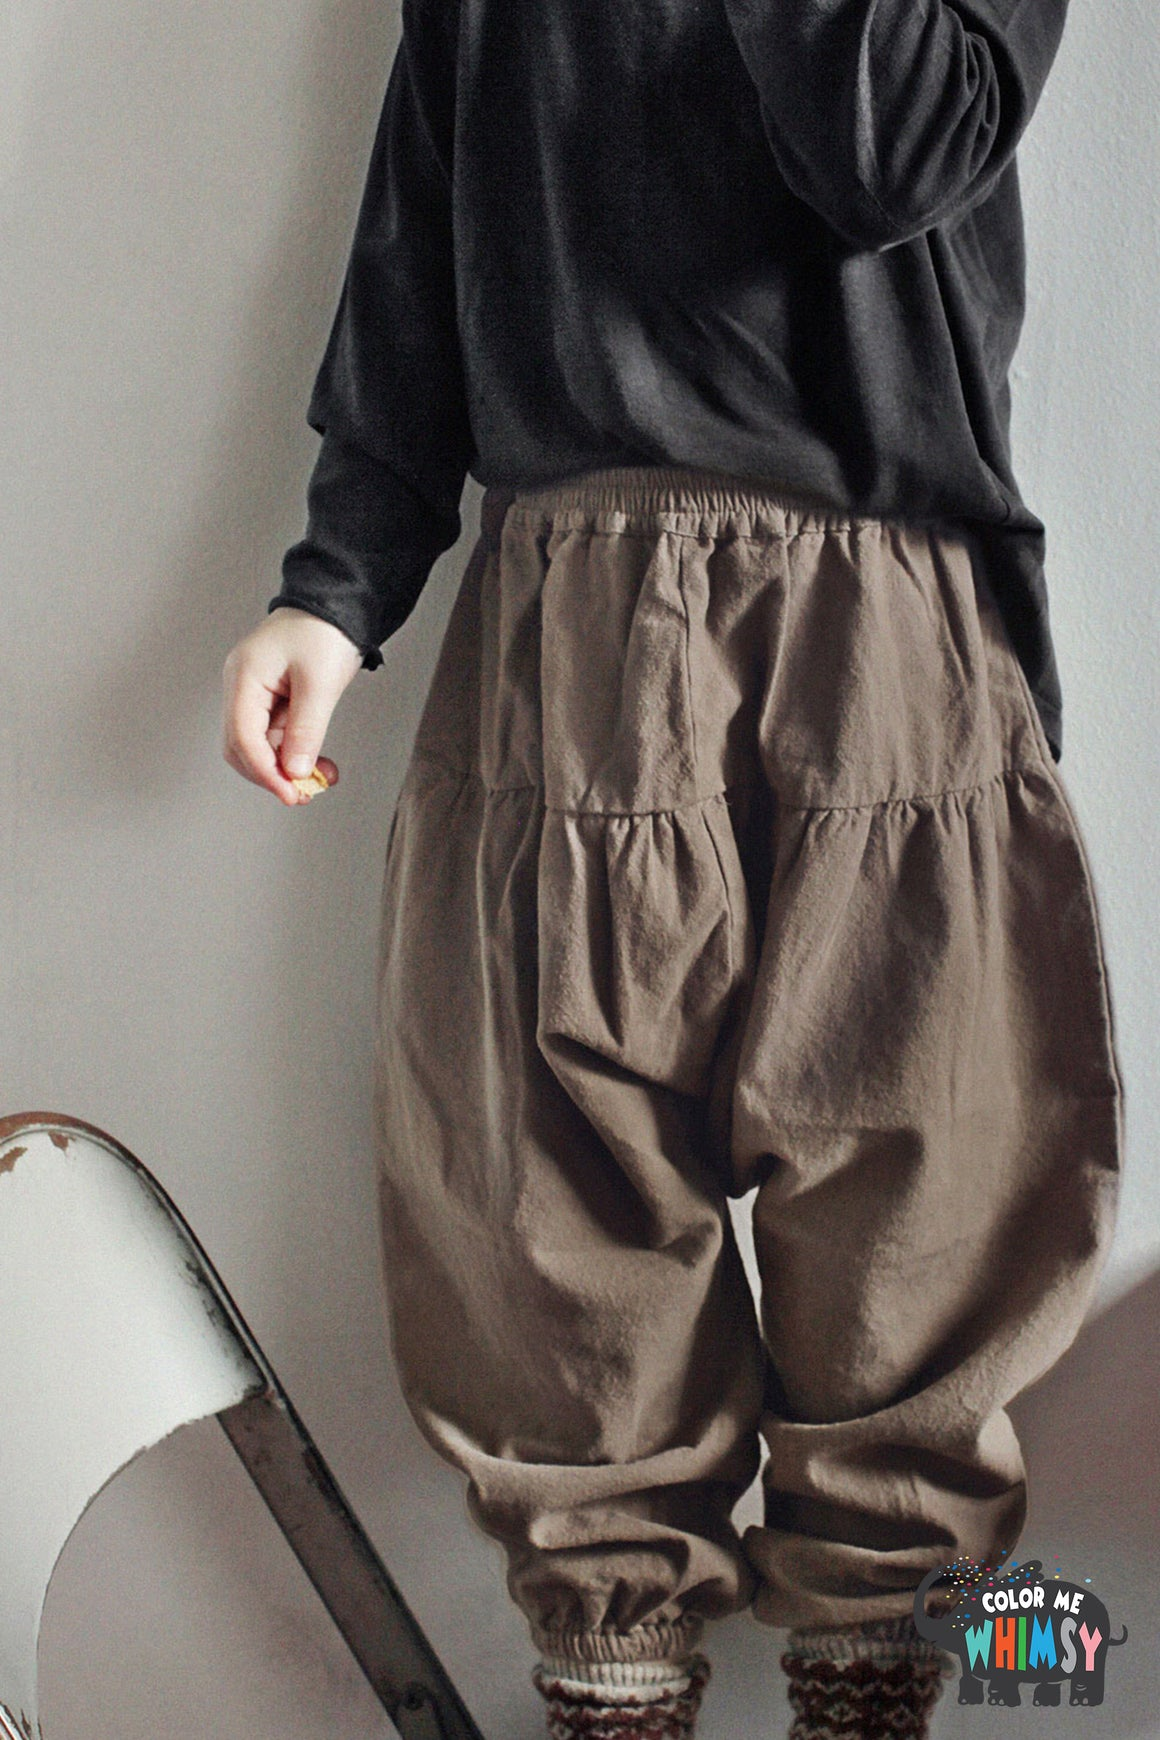 SCON Lunese Pants at Color Me WHIMSY hip kid's fashion ethically made in south korea